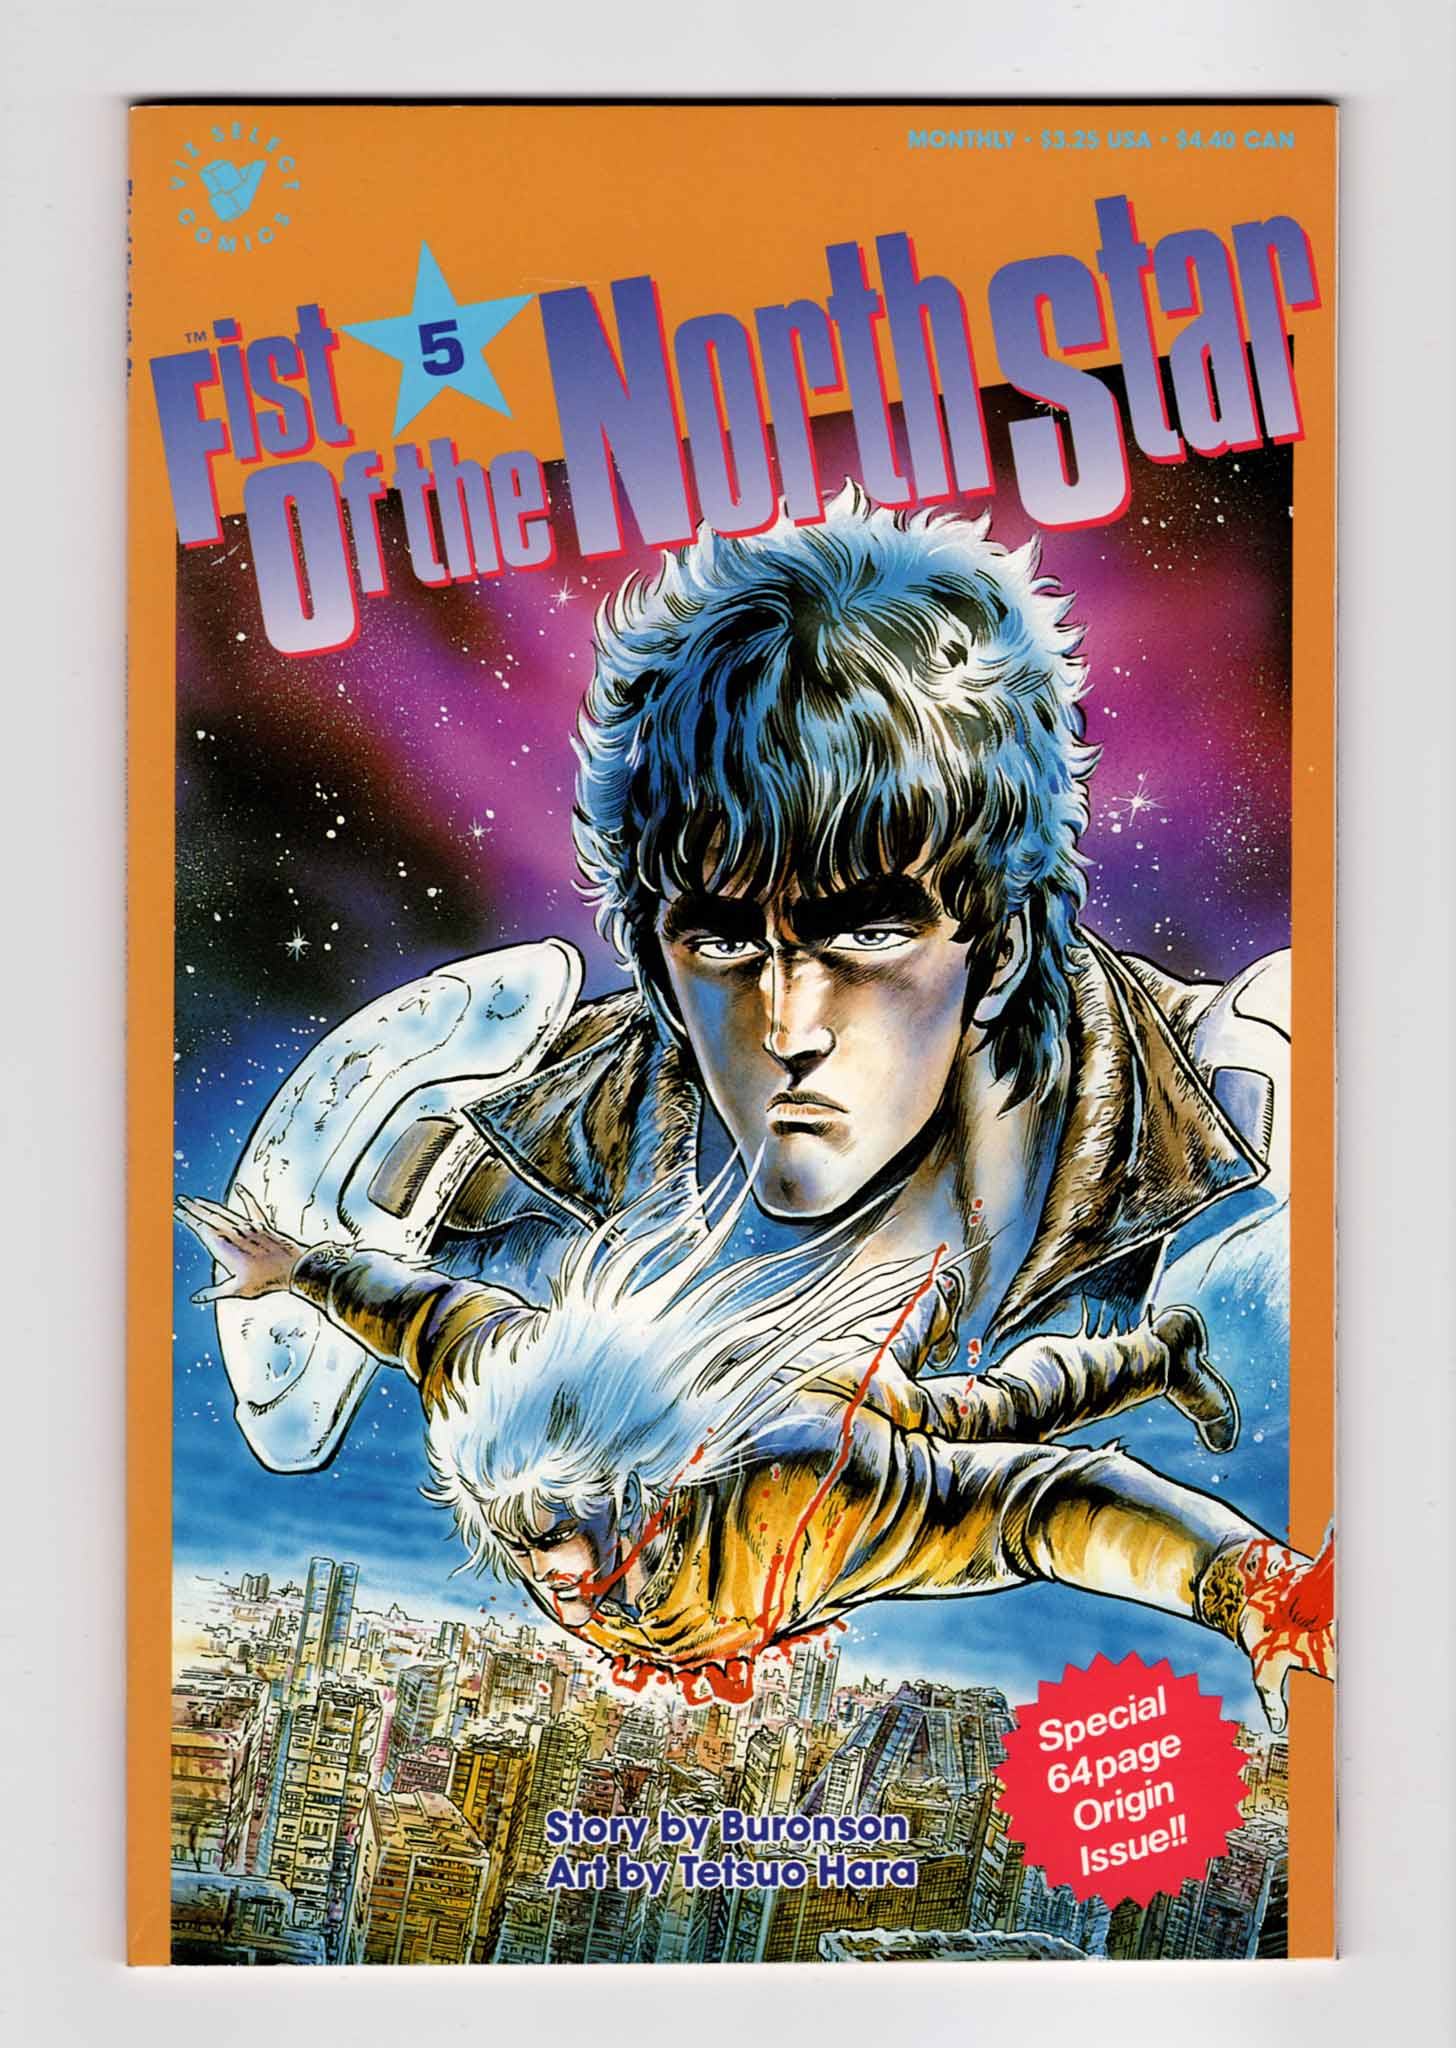 Fist of the North Star 5—Front Cover